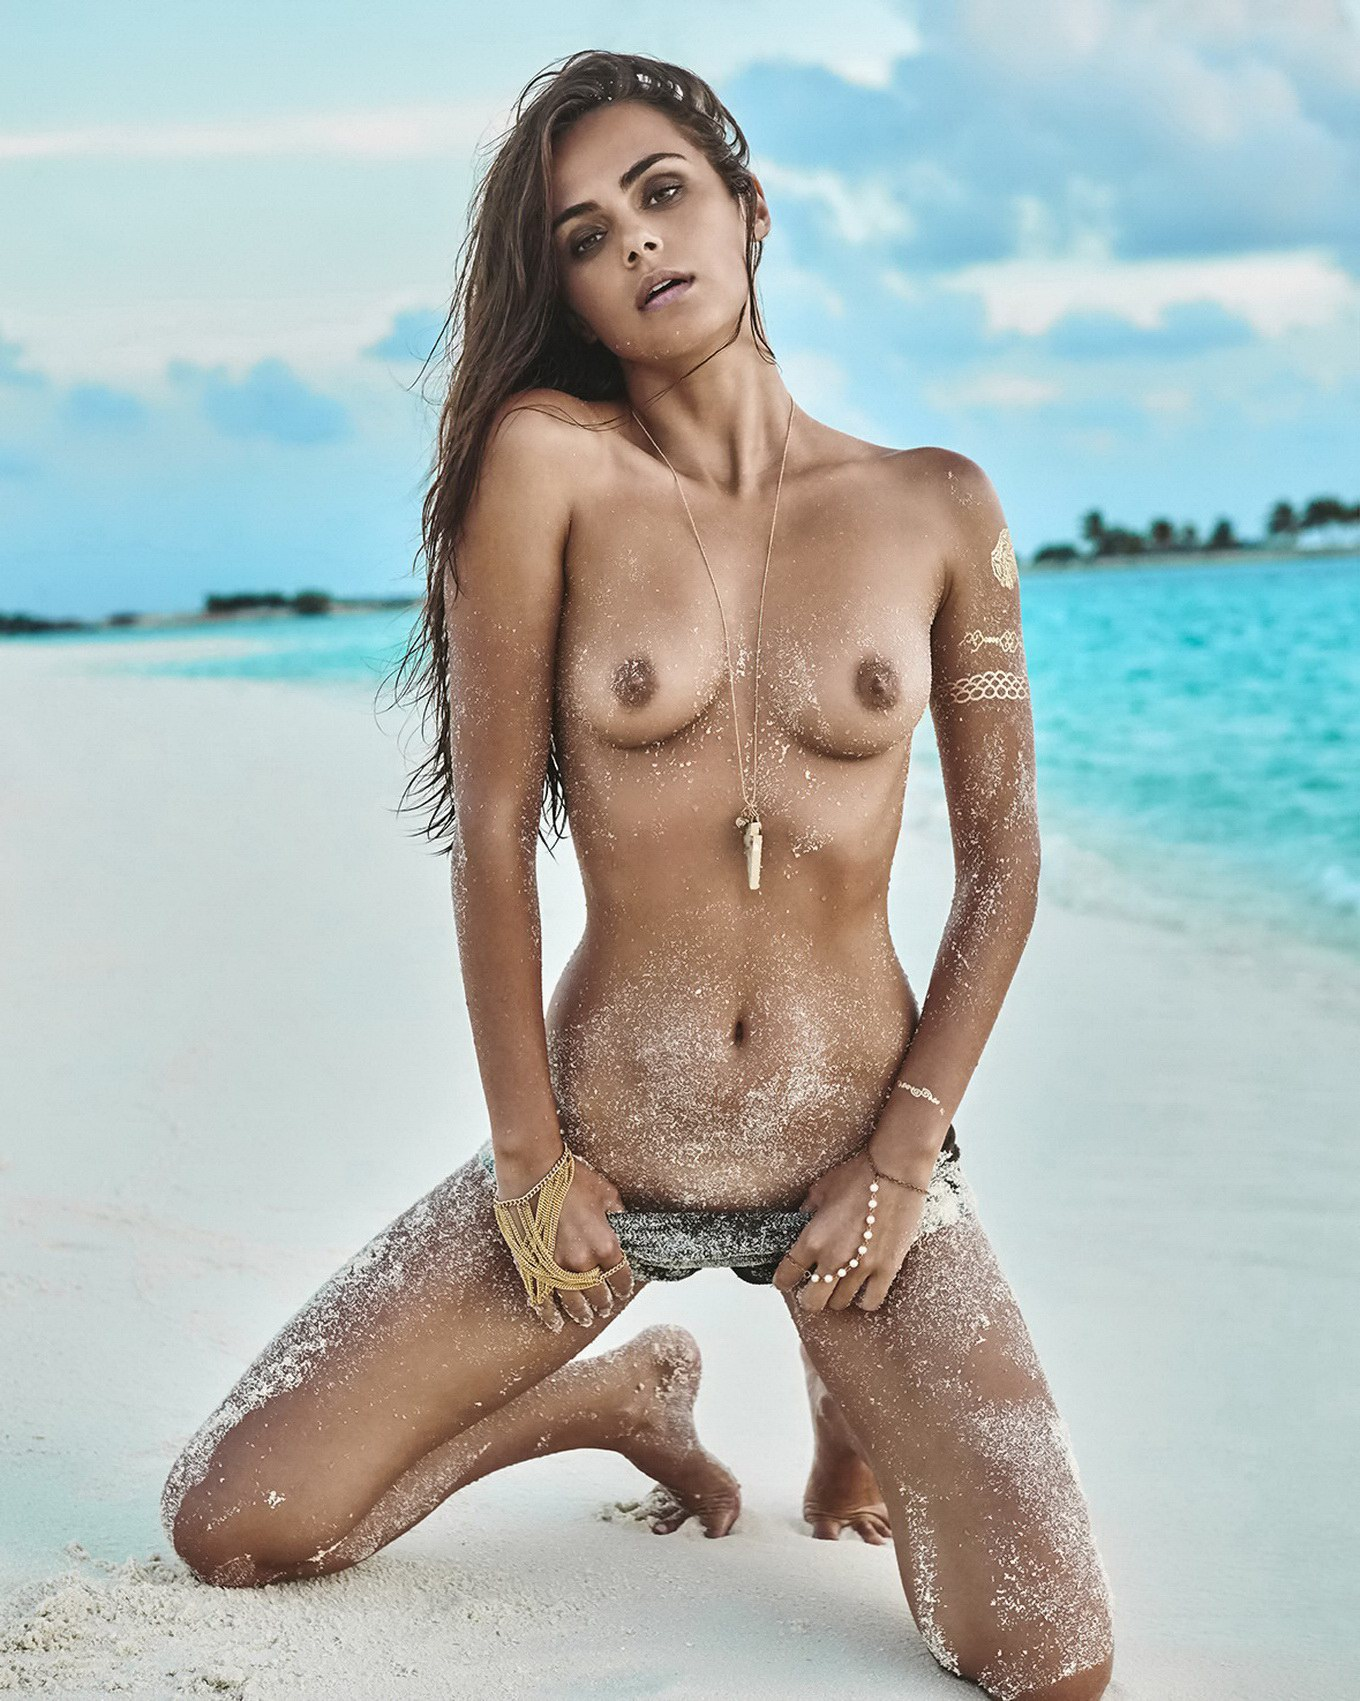 Topic There nude people in beach hd